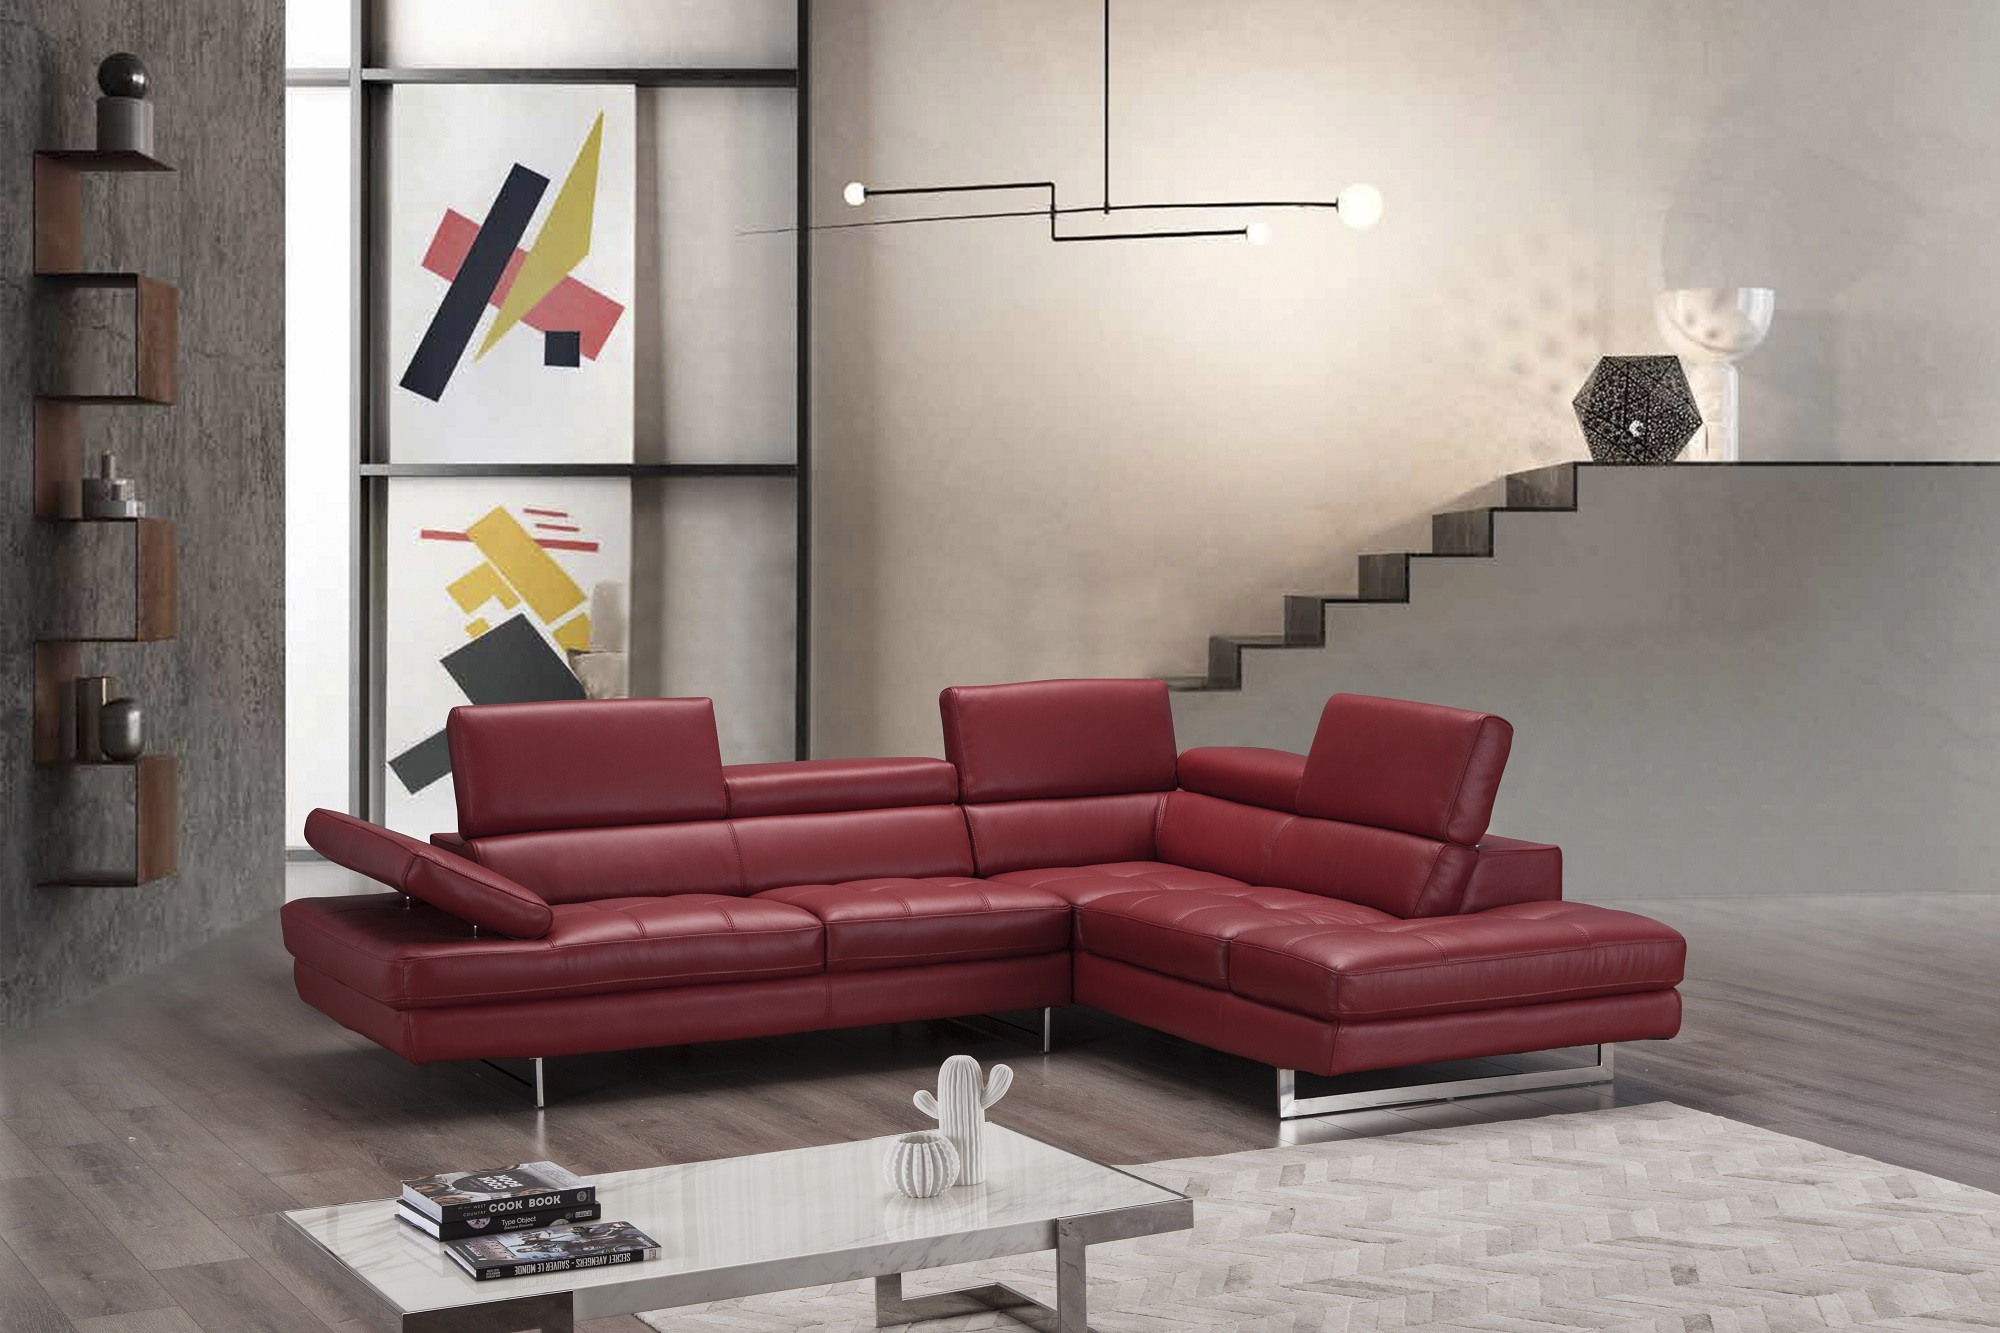 Advanced Adjustable Tufted Modern Leather L-shape Sectional